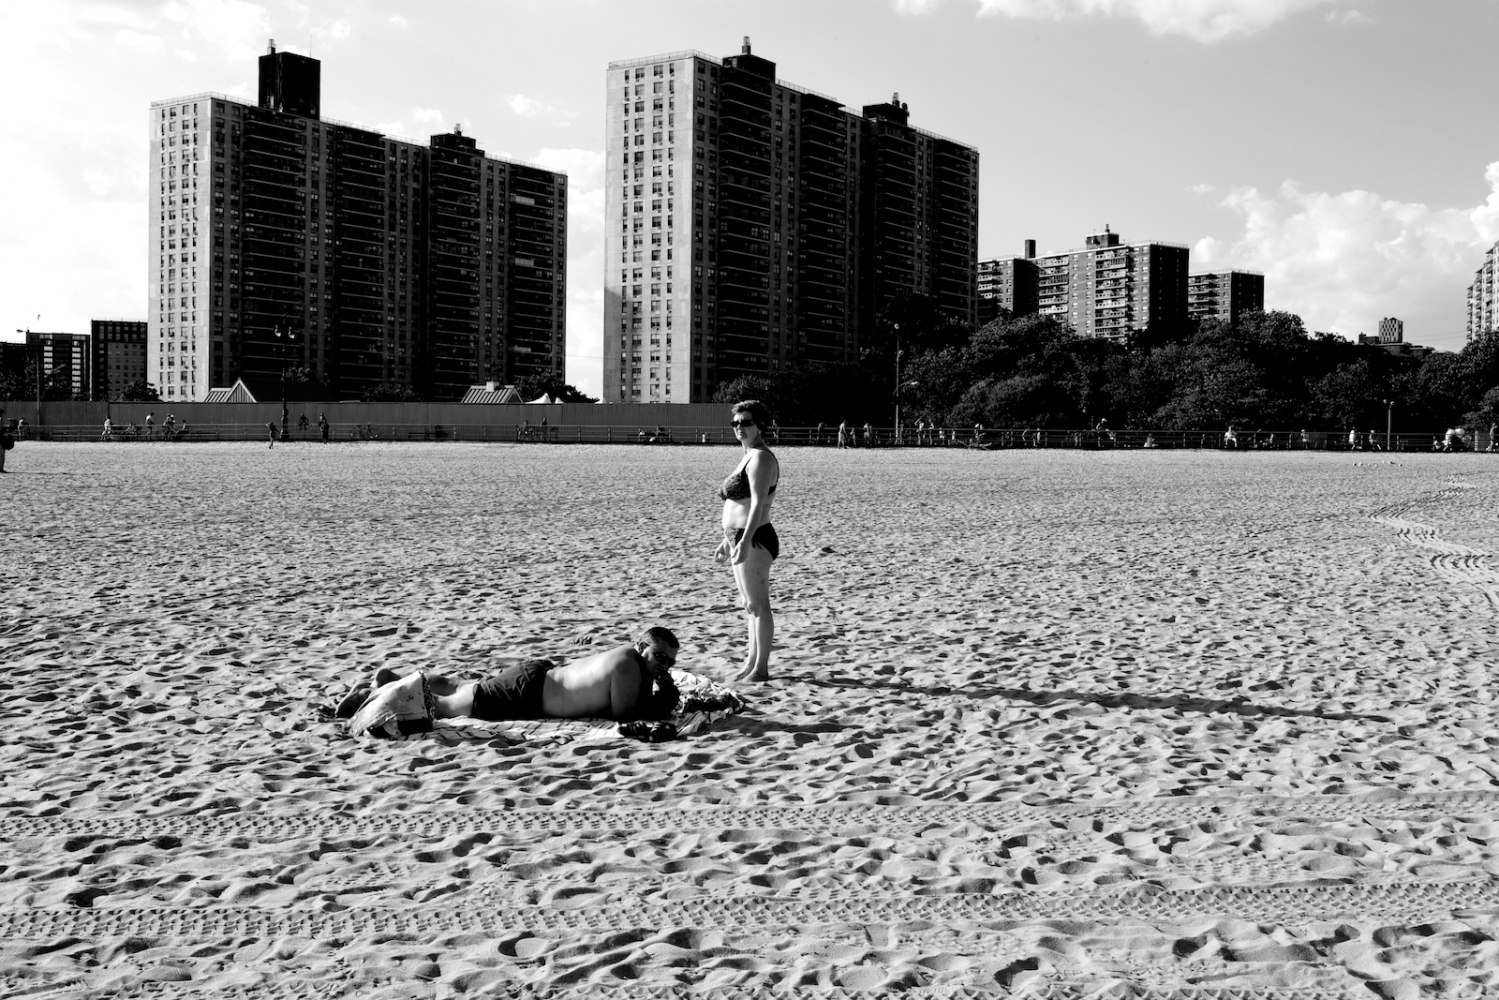 Last Woman Standing. Coney Island, NY, Summer 2011